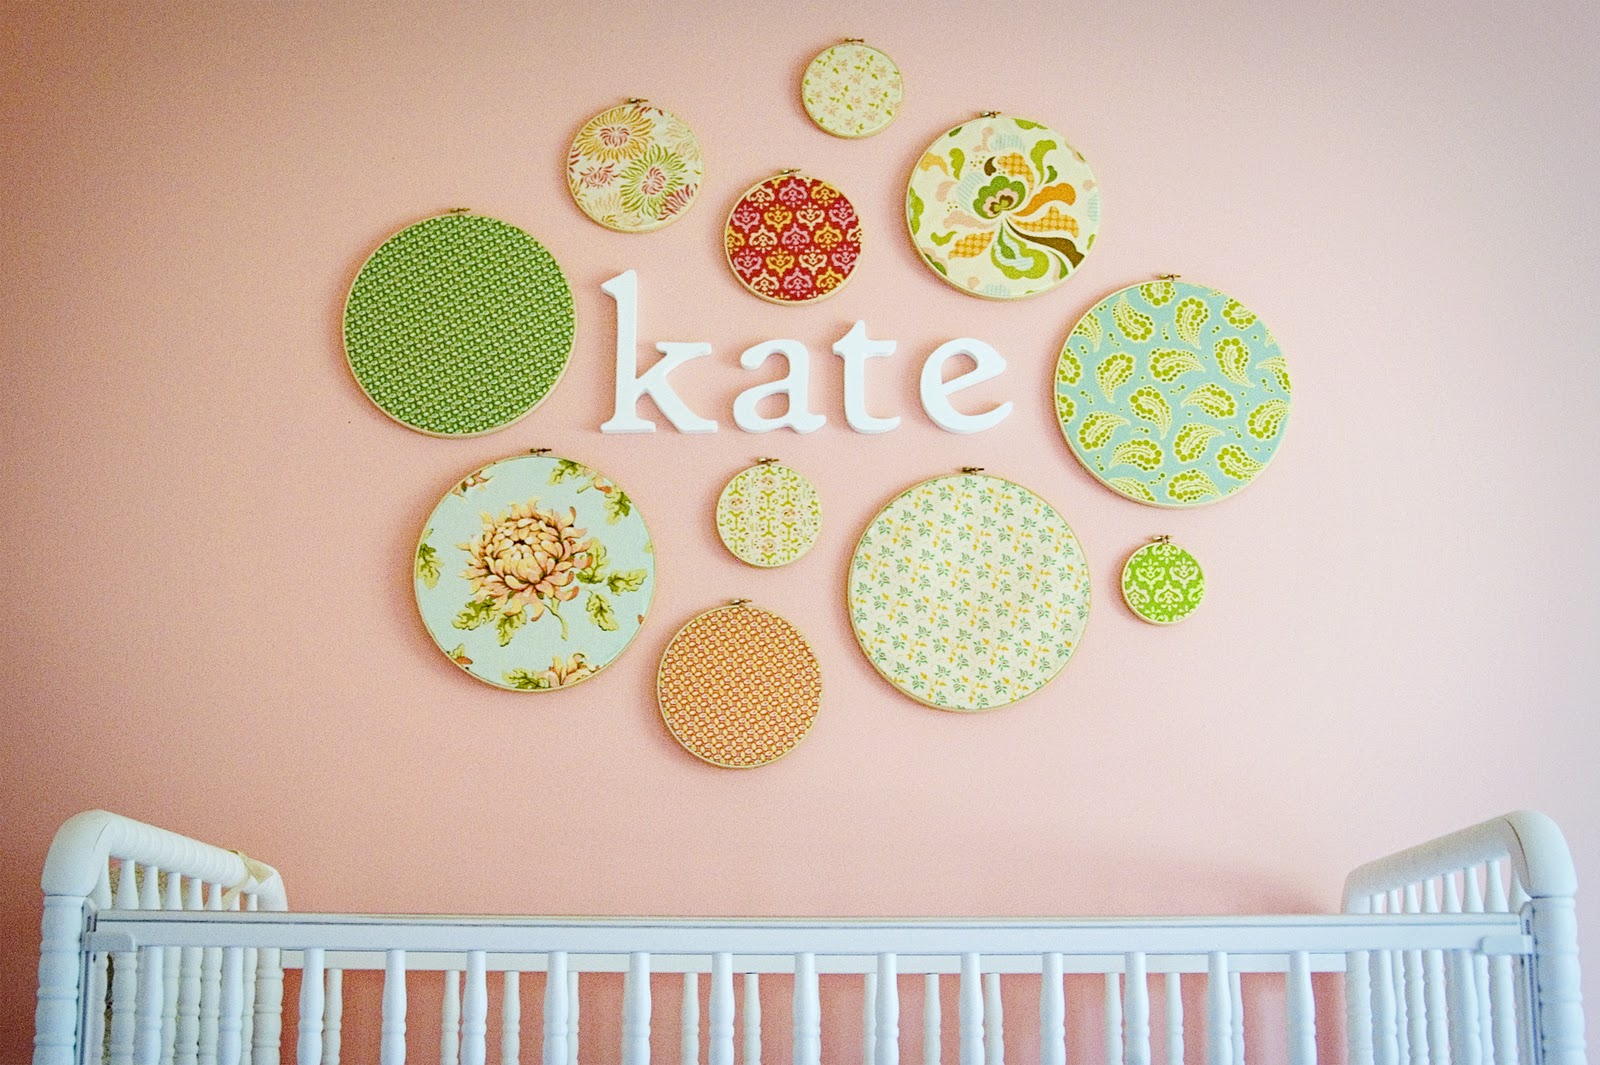 Diy Wall Decor Ideas Nursery : Moved temporarily